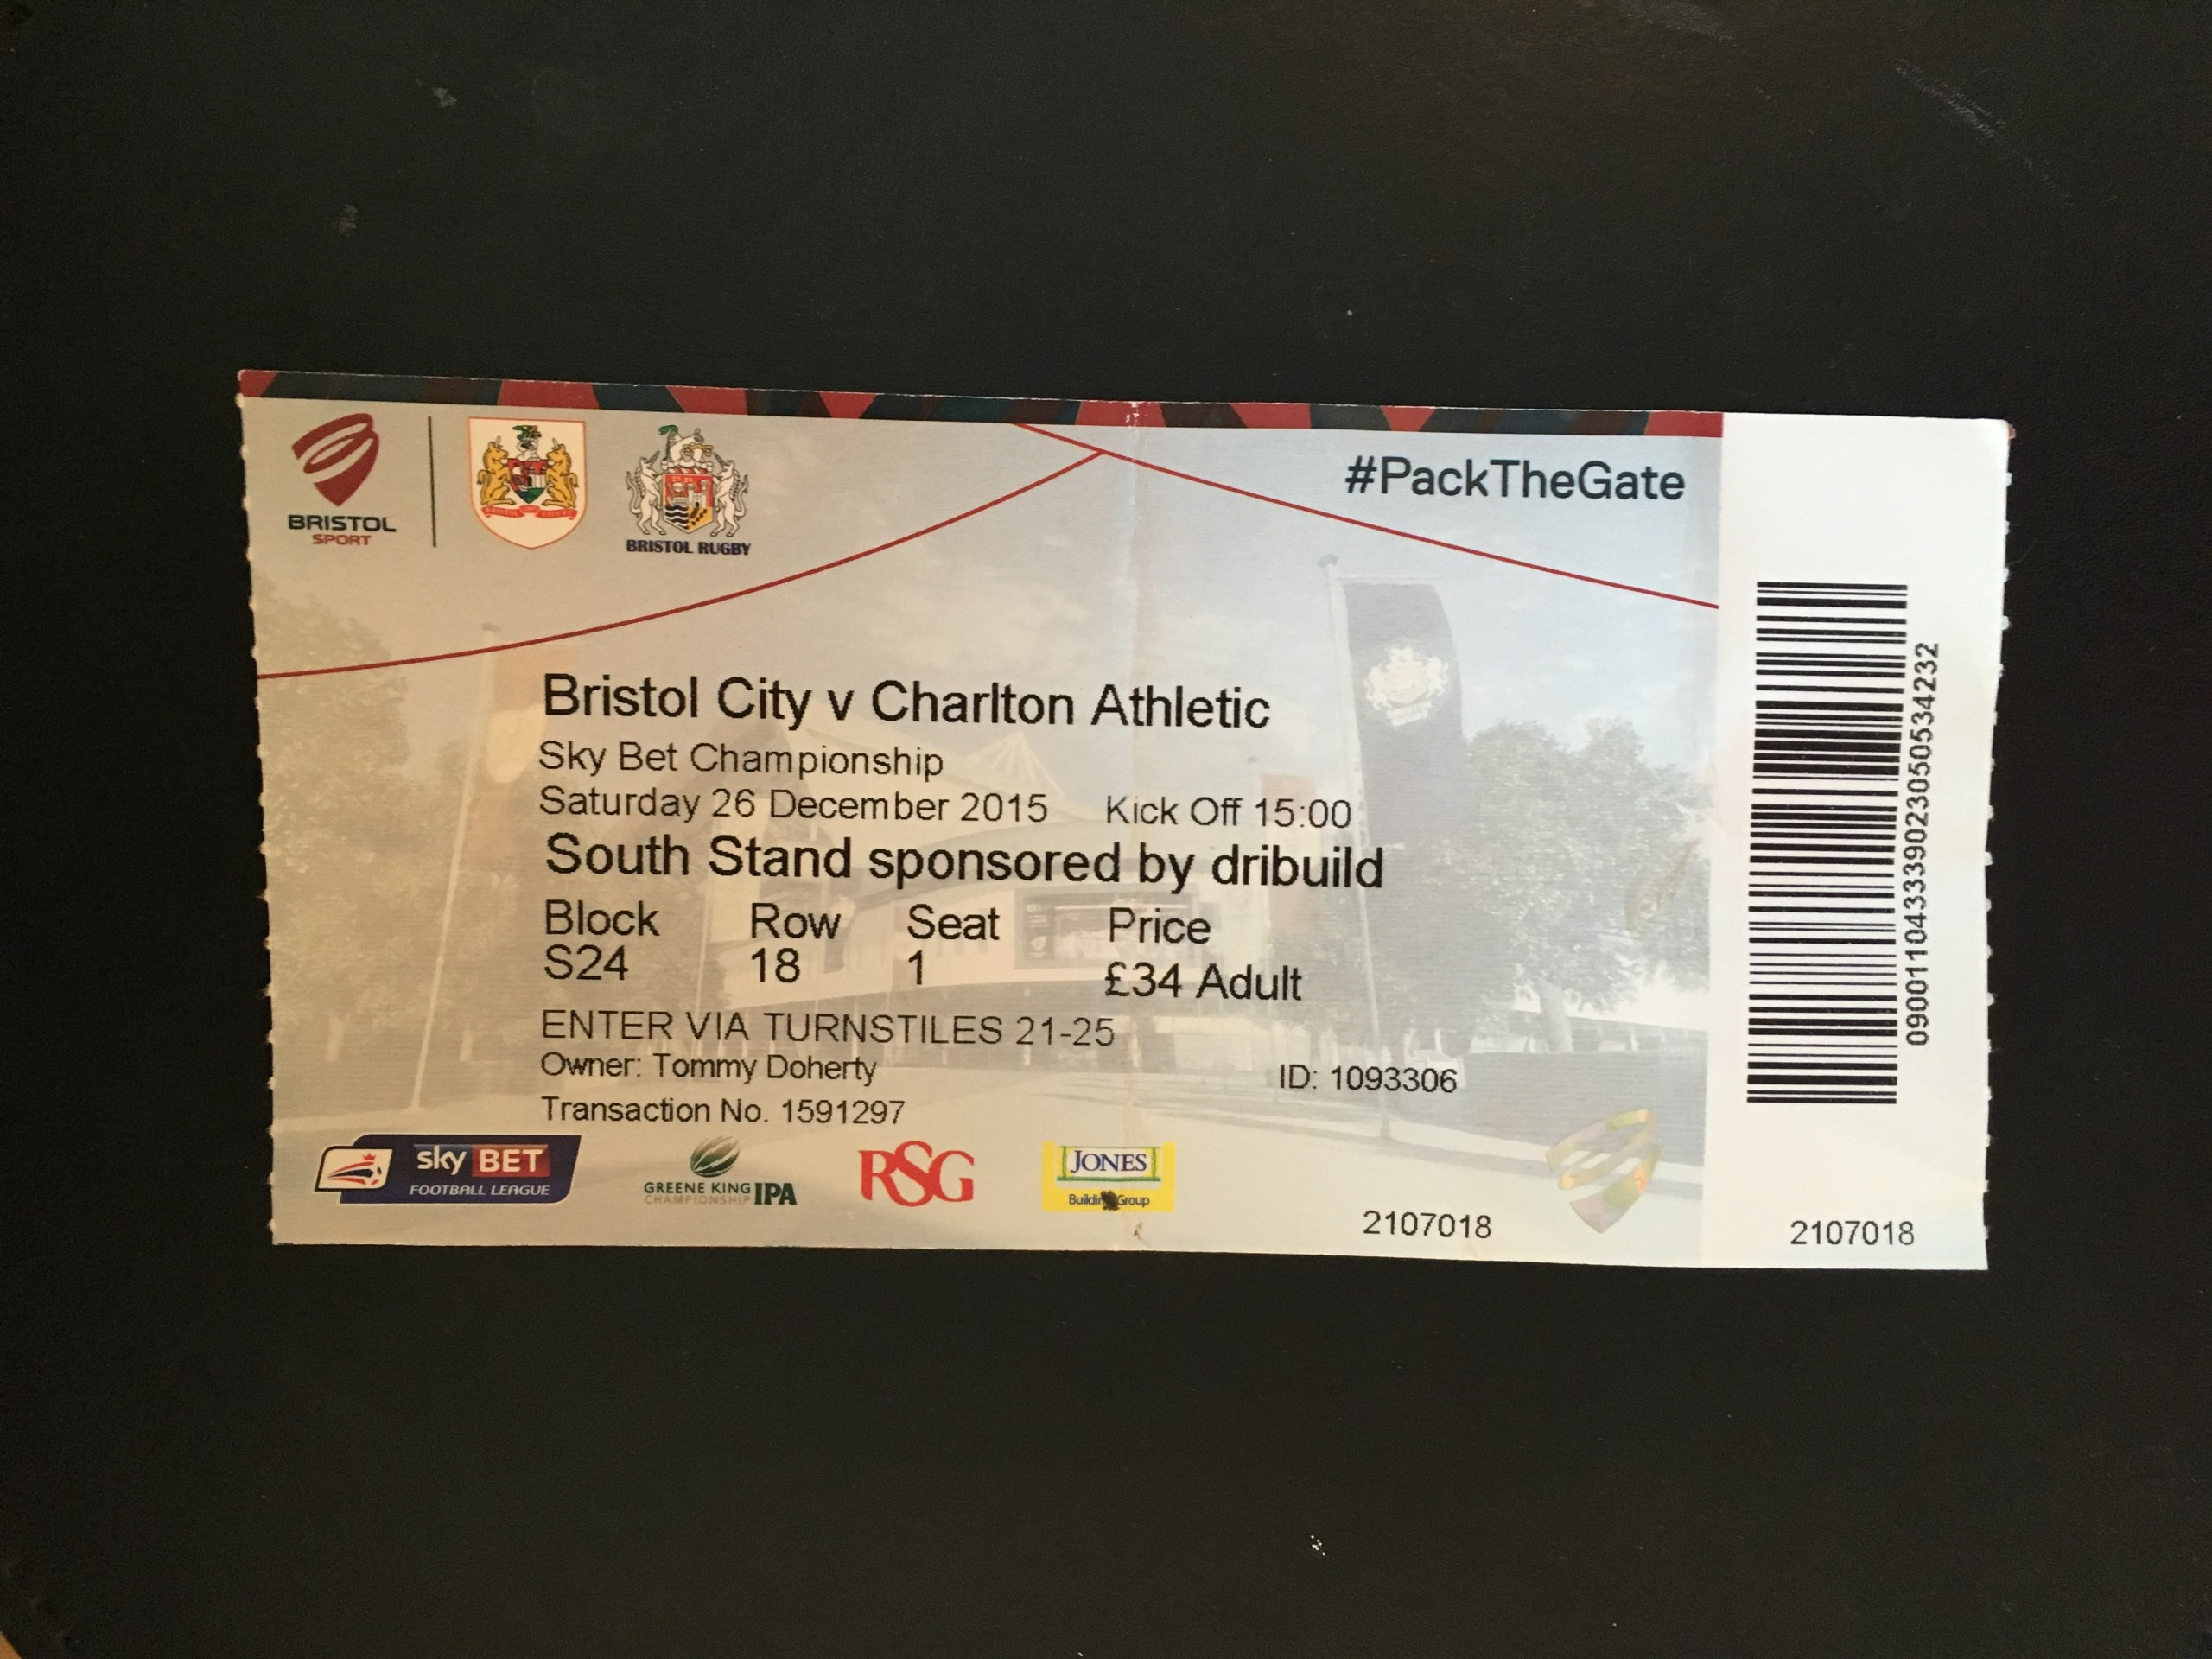 Bristol City v Charlton Athletic 26-12-2015 Ticket